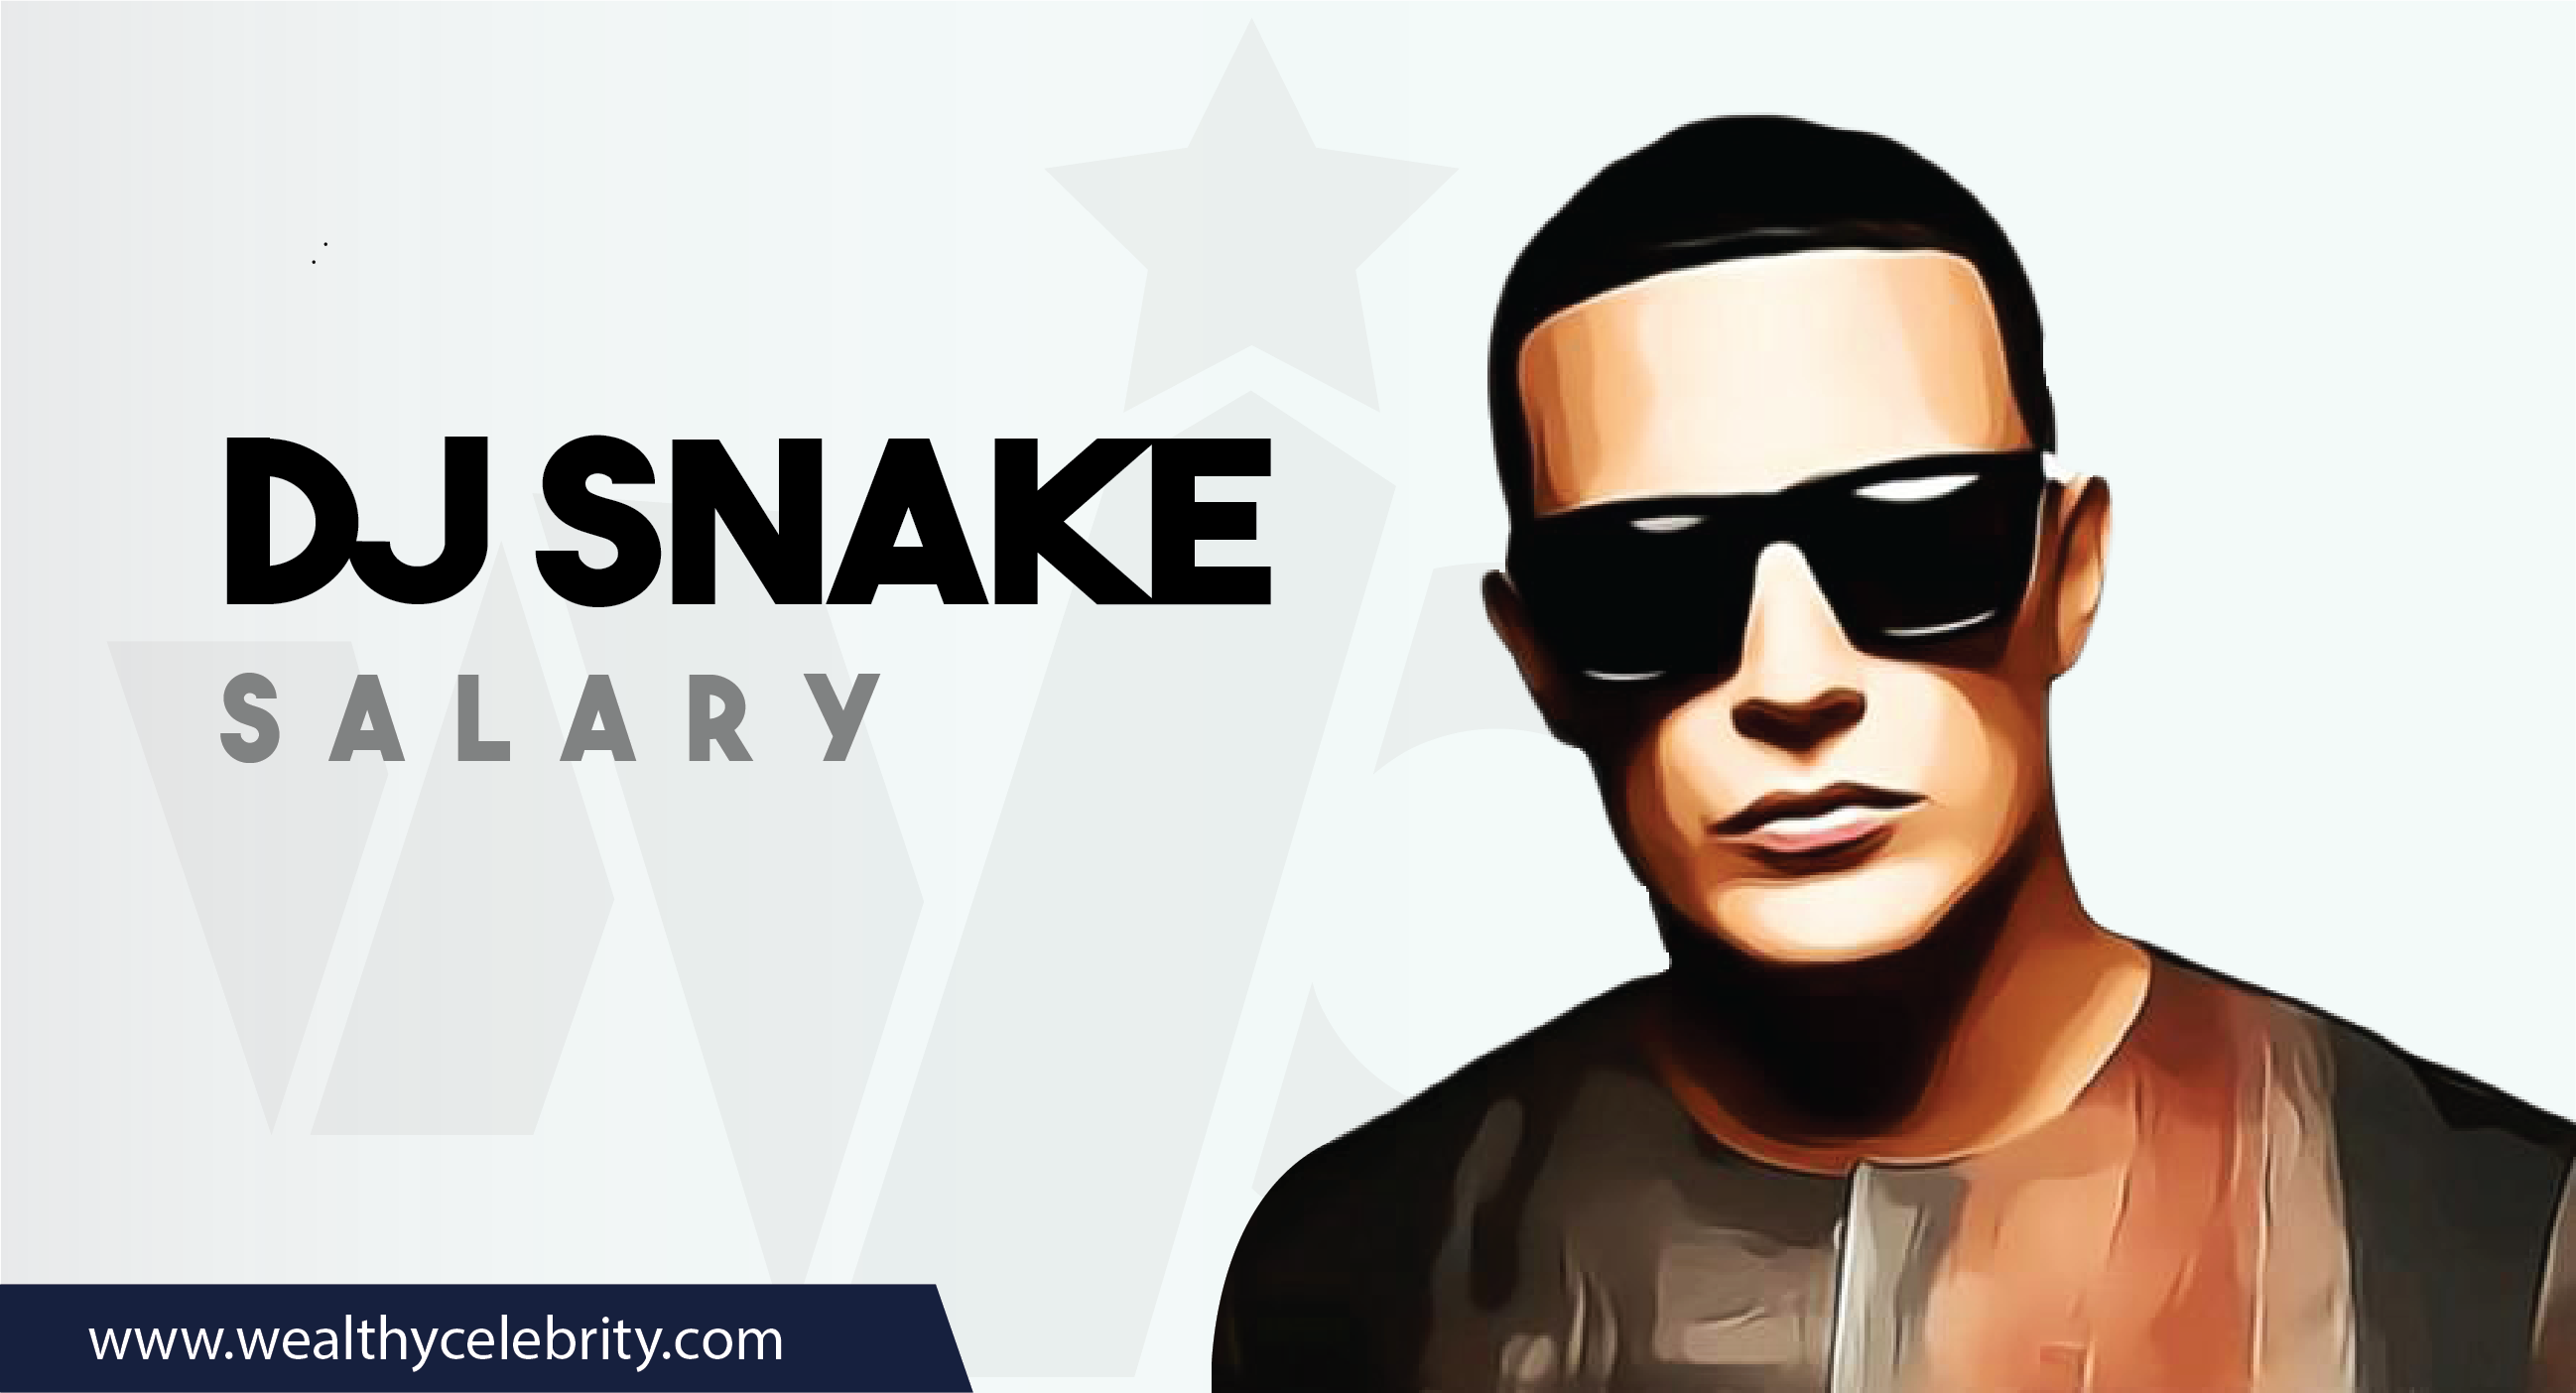 DJ Snake DJ - Current Salary Net Worth